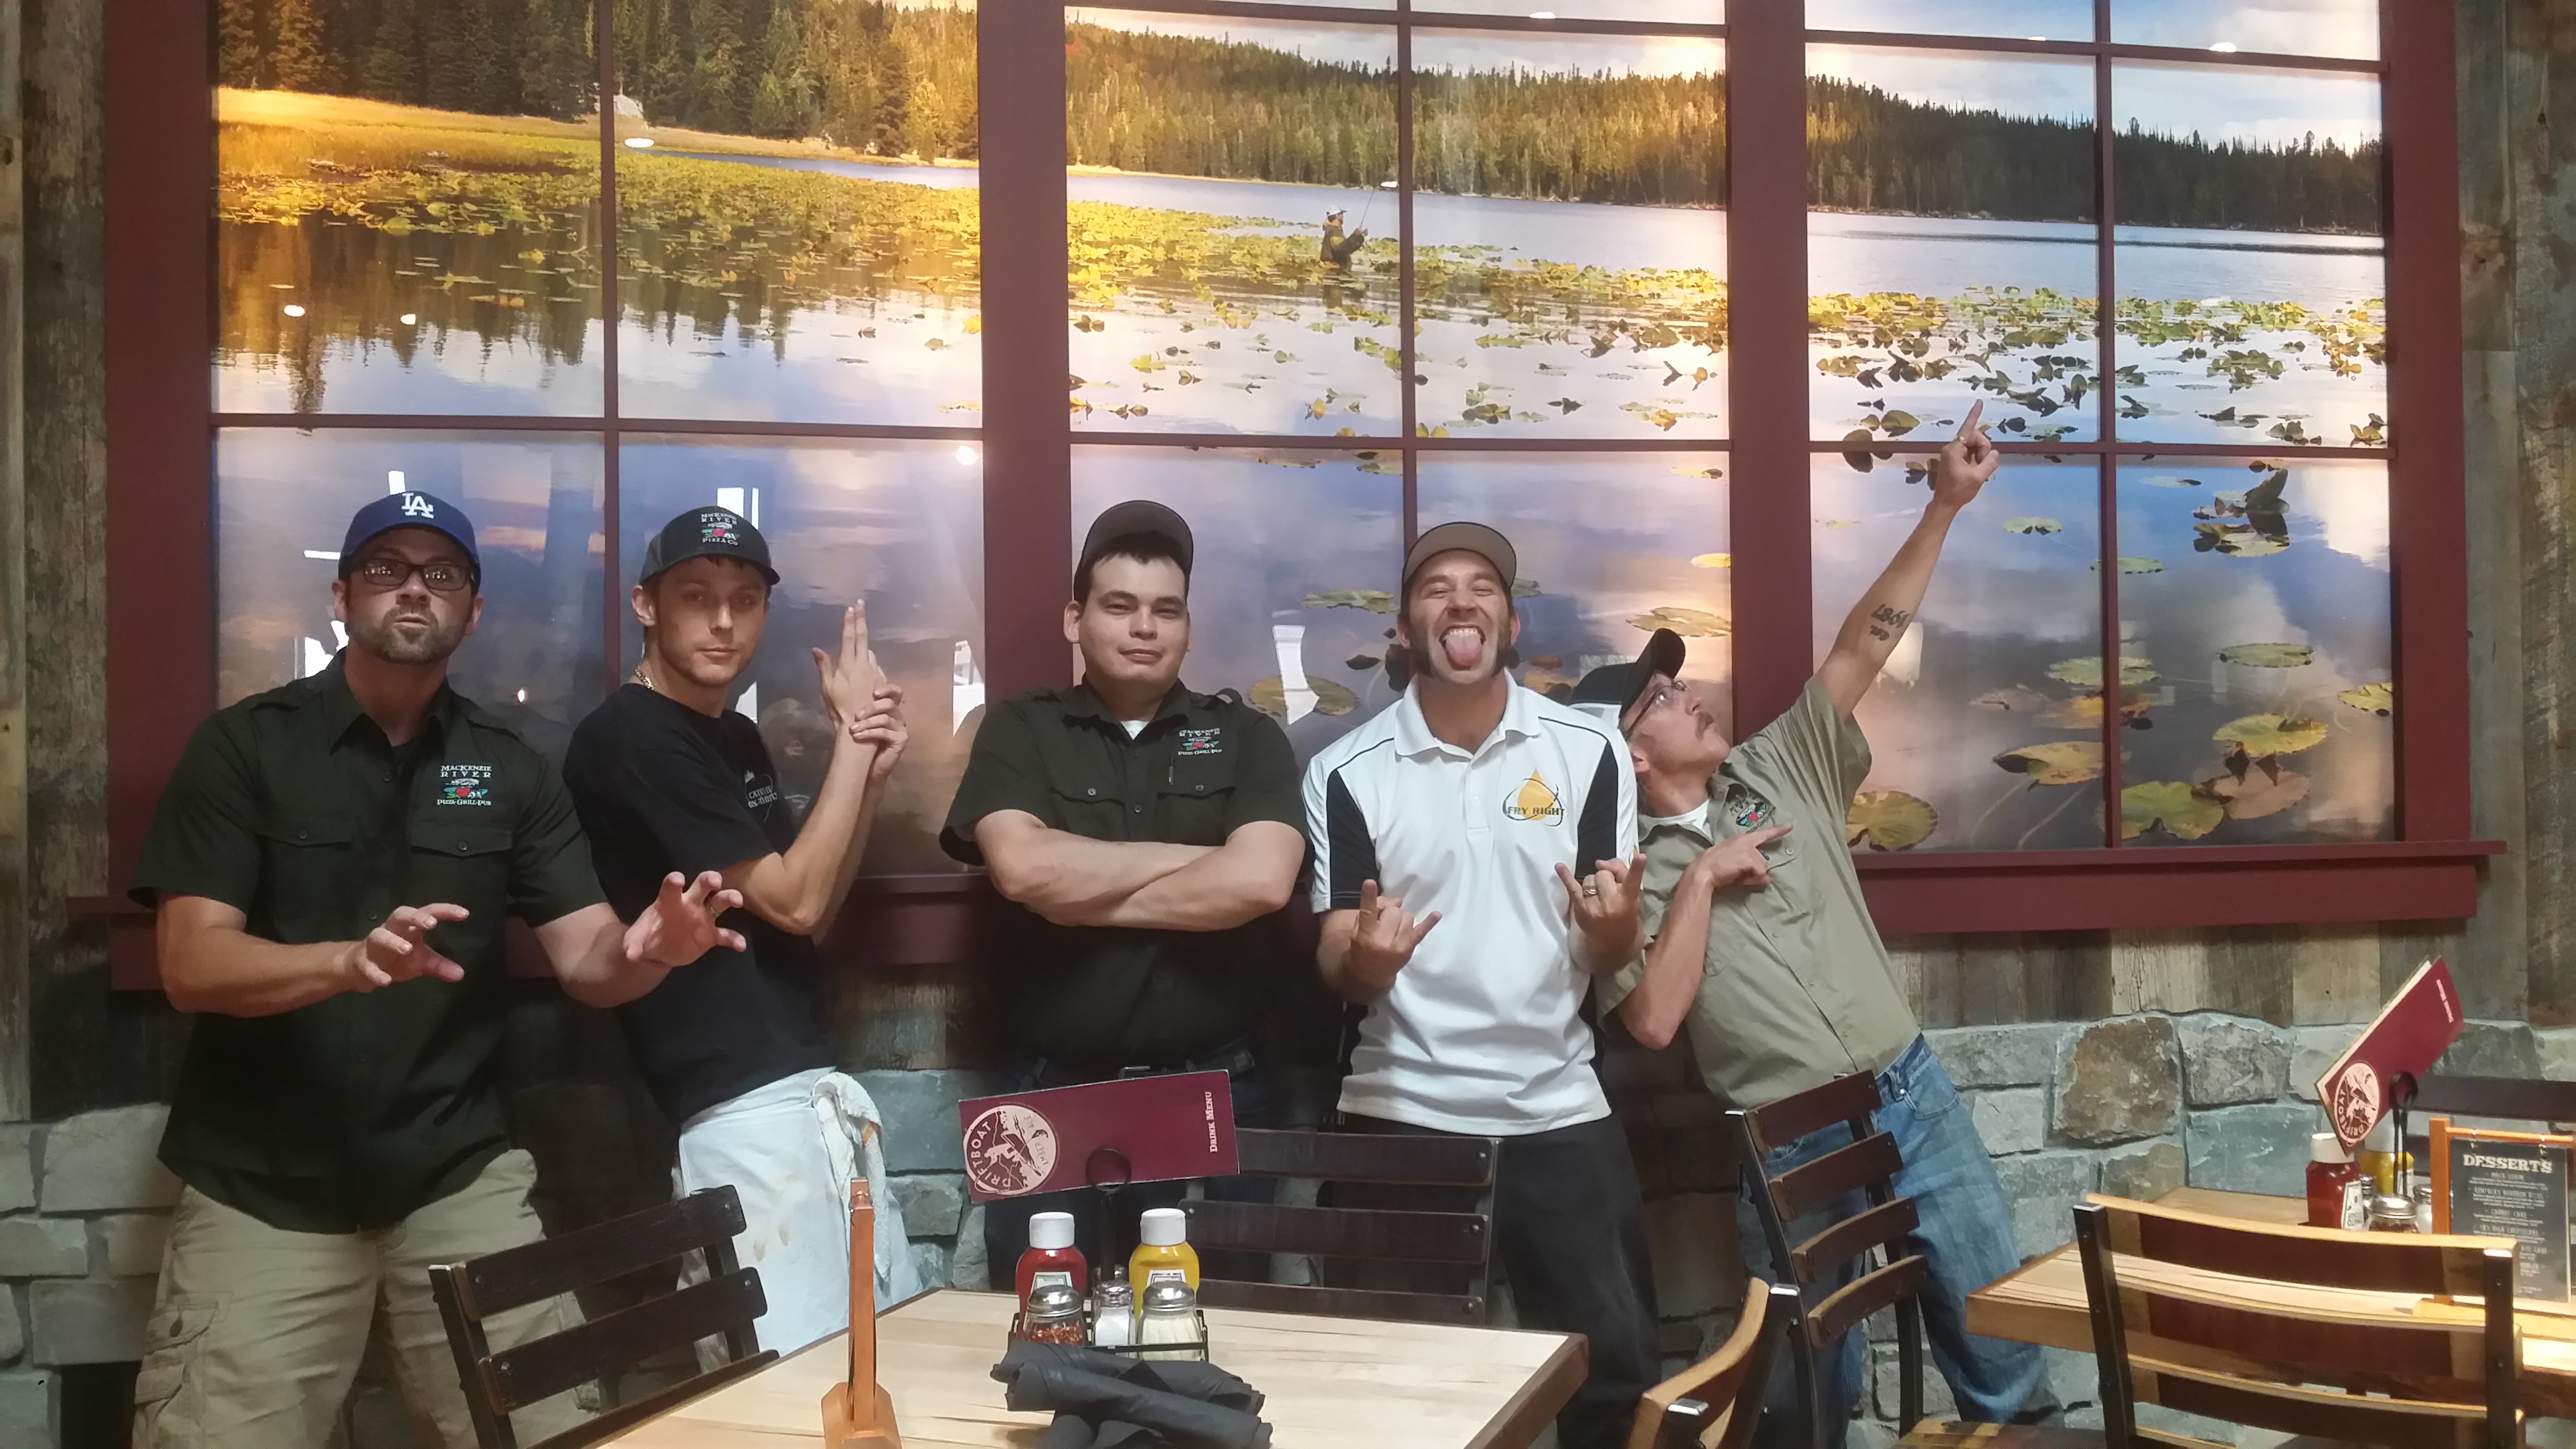 Fry Right and Mackenzie River Management having fun